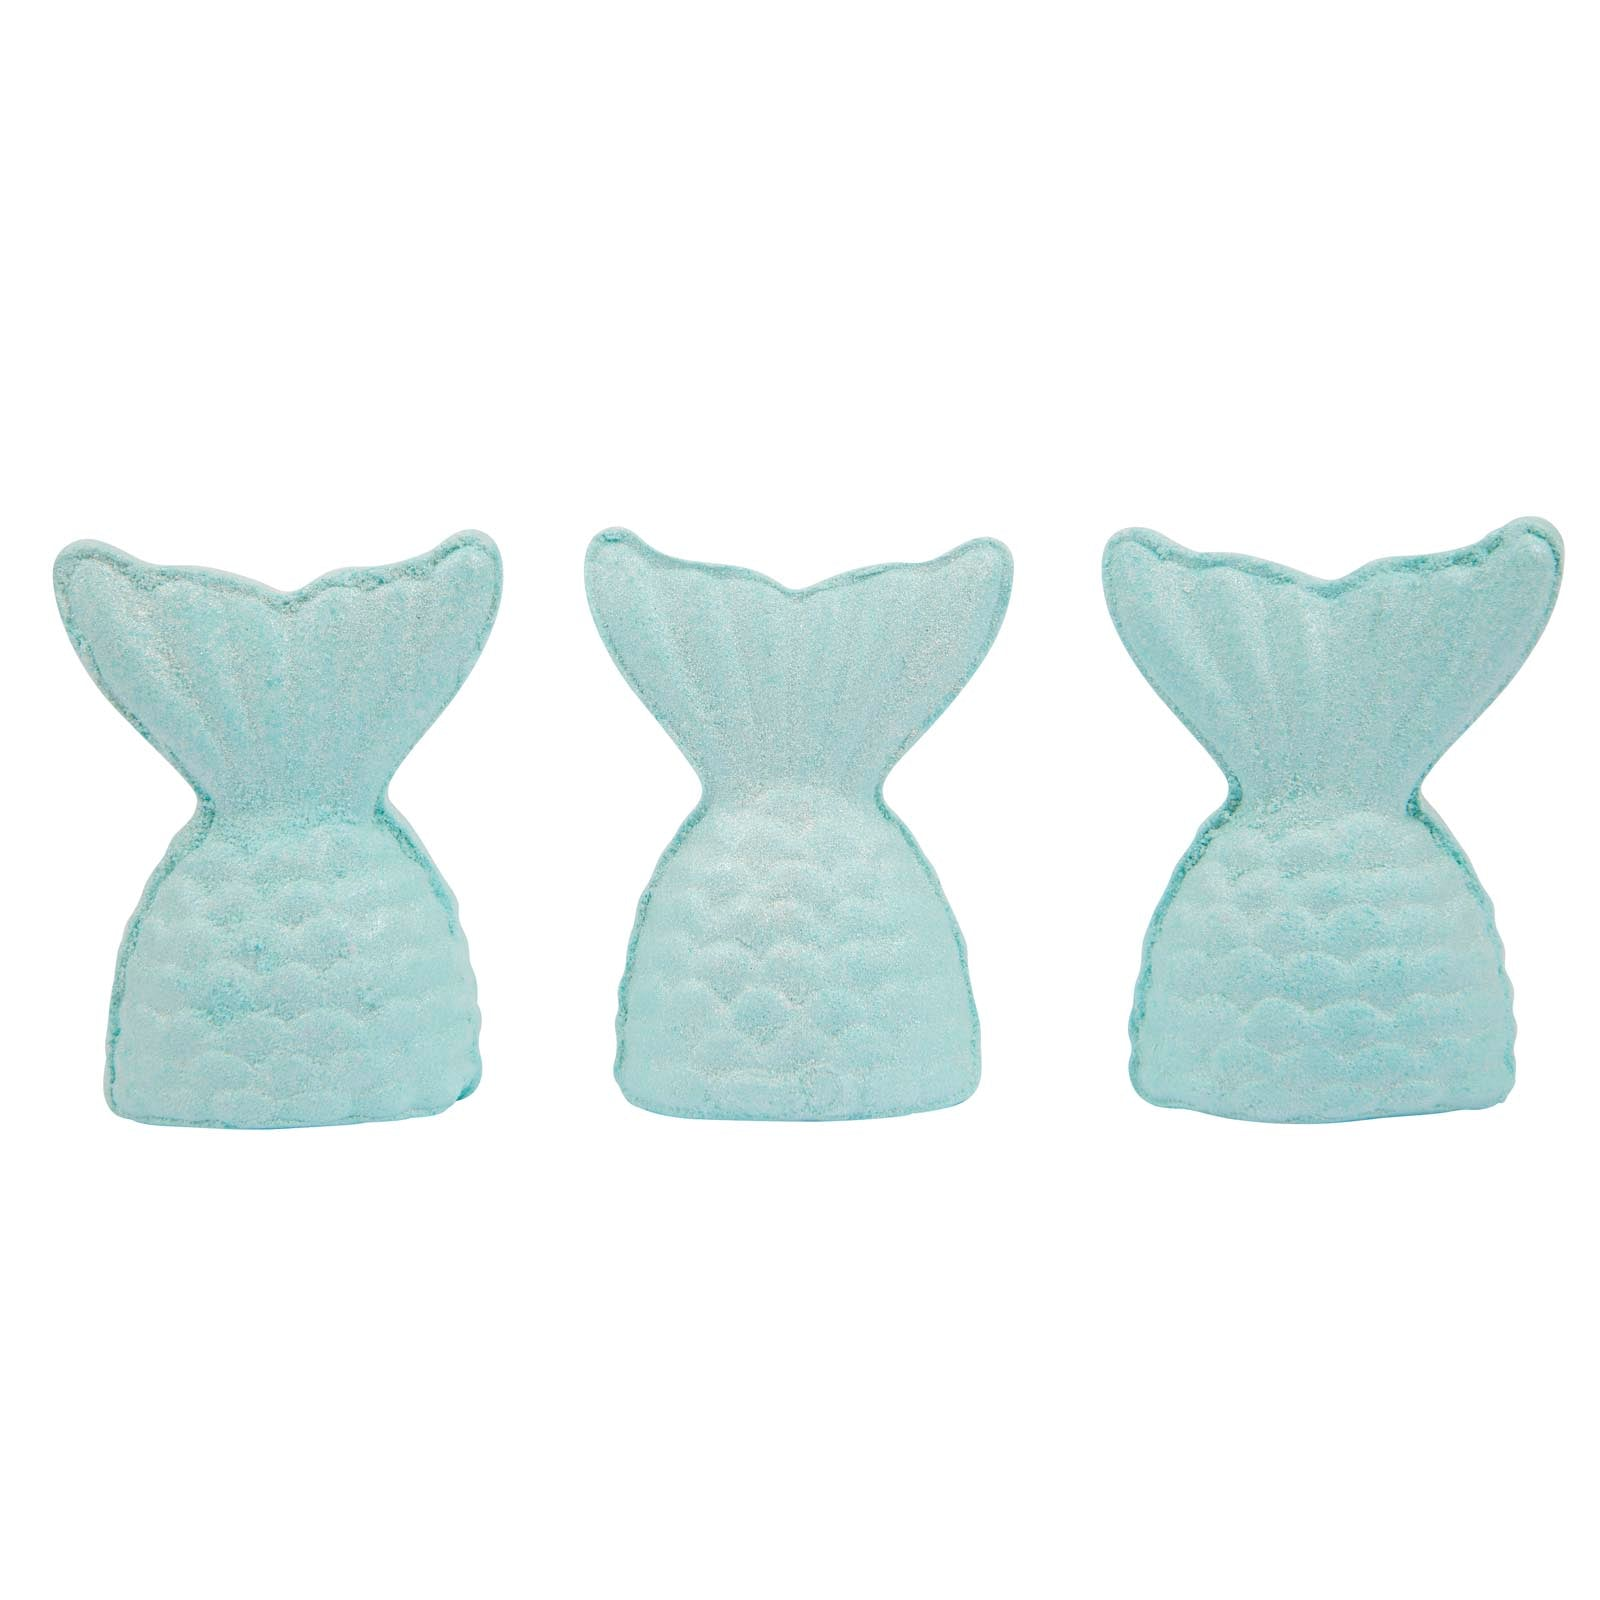 Sunnylife Mermaid Bath Bombs Set